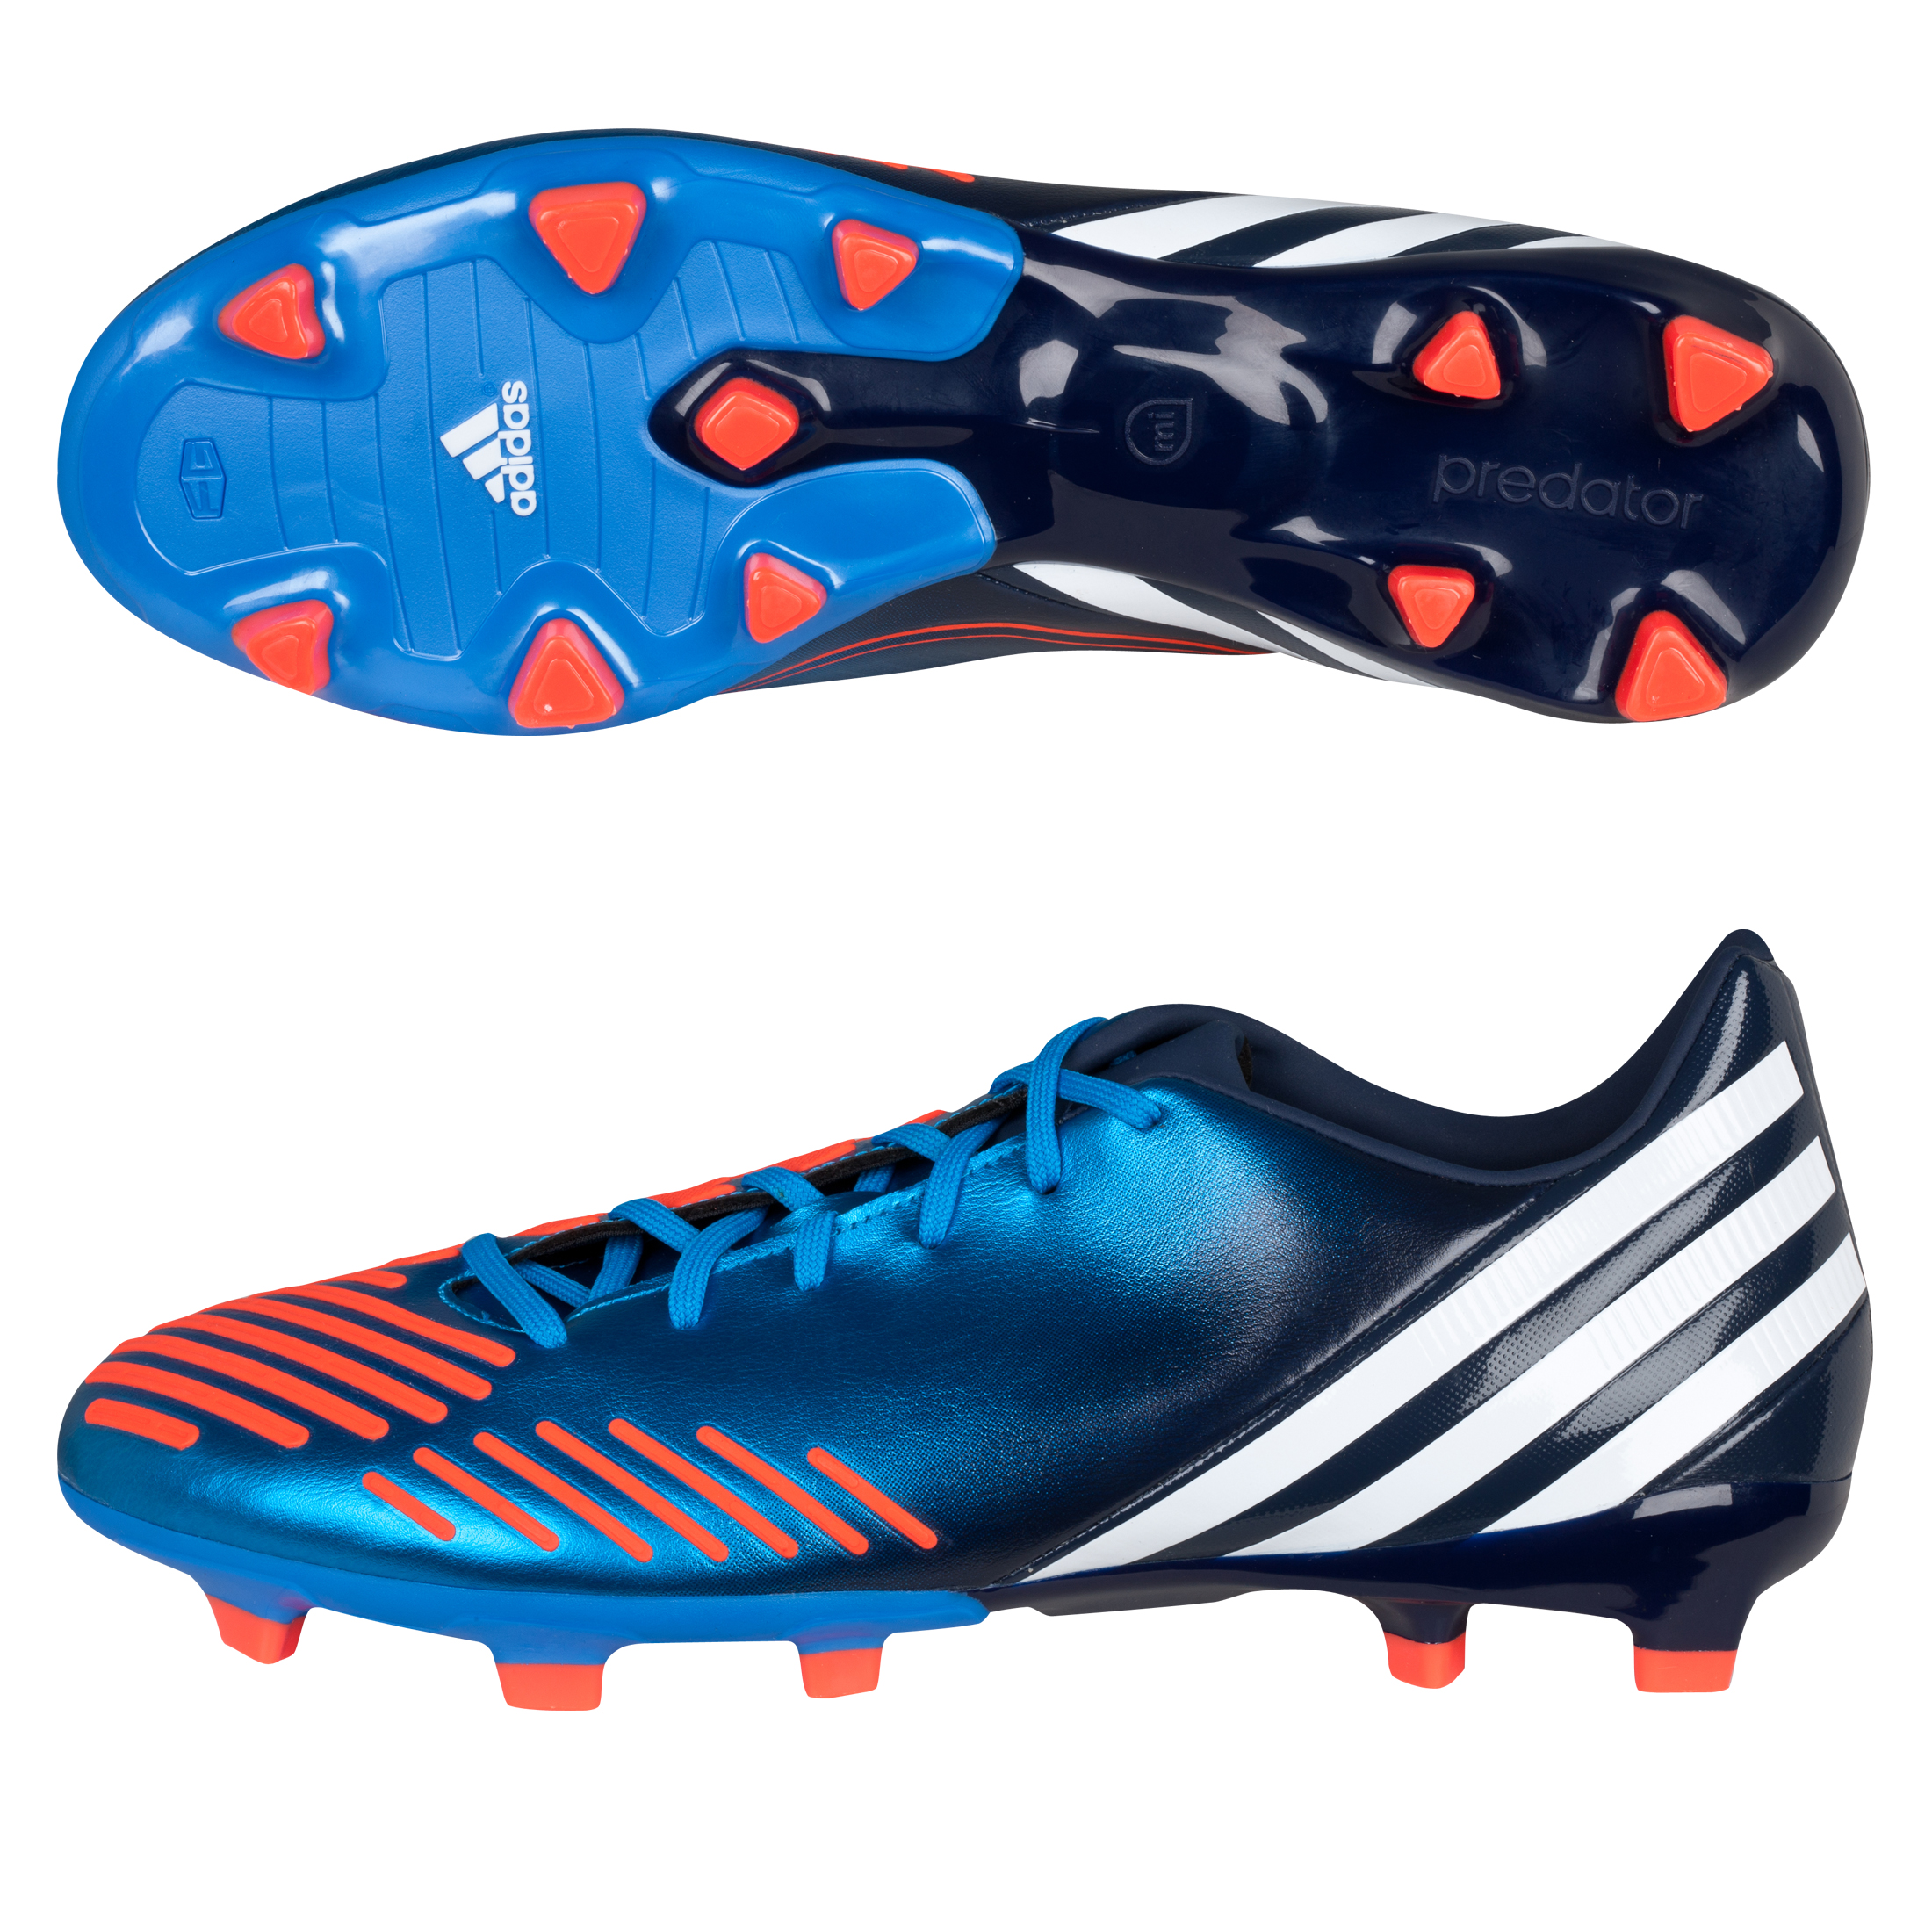 Adidas Predator Absolion LZ TRX Firm Ground Football Boots - Bright Blue/Running White/Infrared